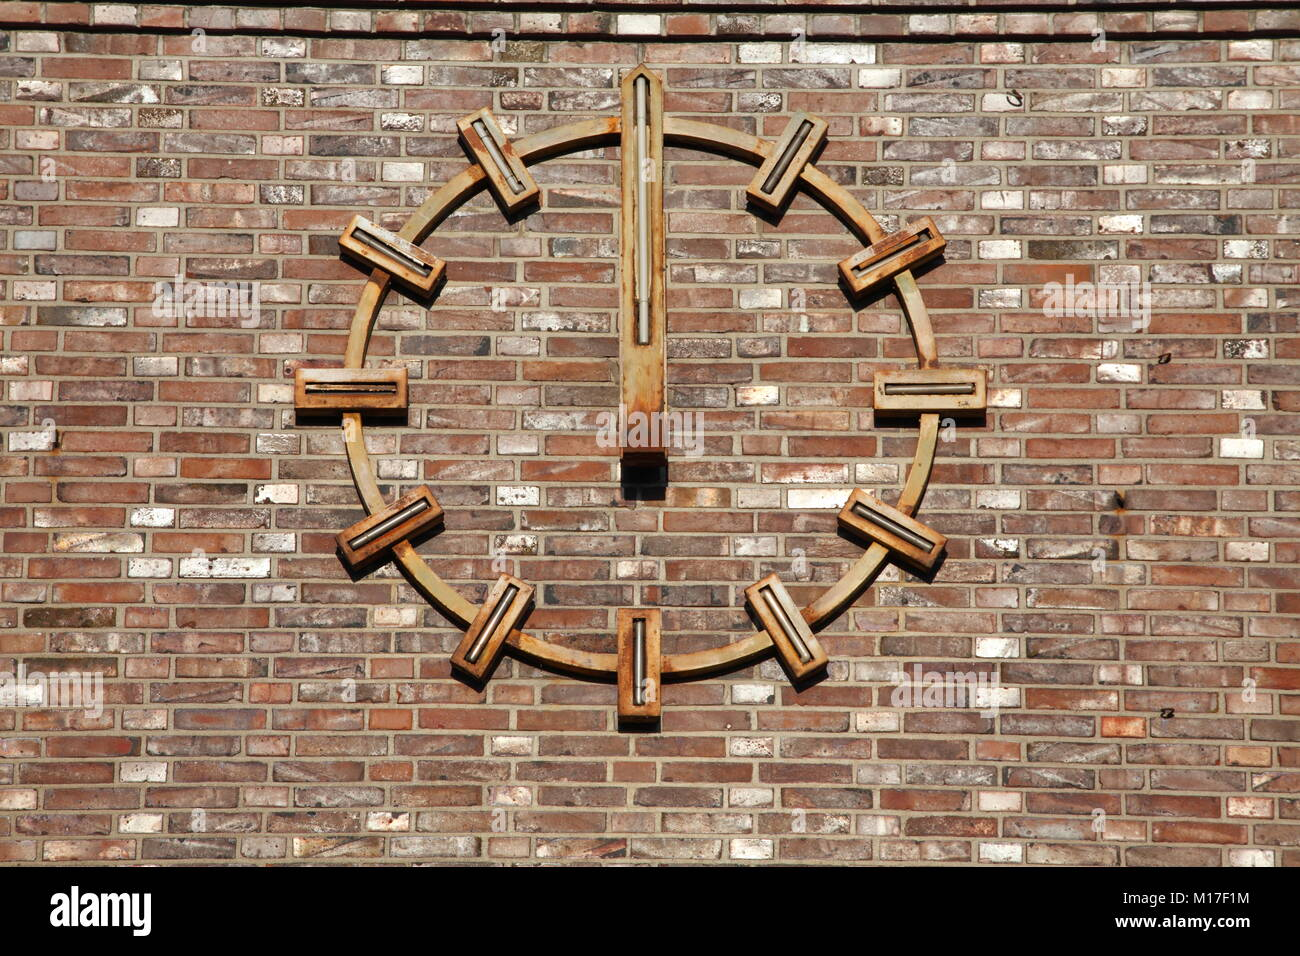 Goldene Uhr Stock Photos Goldene Uhr Stock Images Alamy Goldene Stock Photos And Goldene Stock Images Alamy